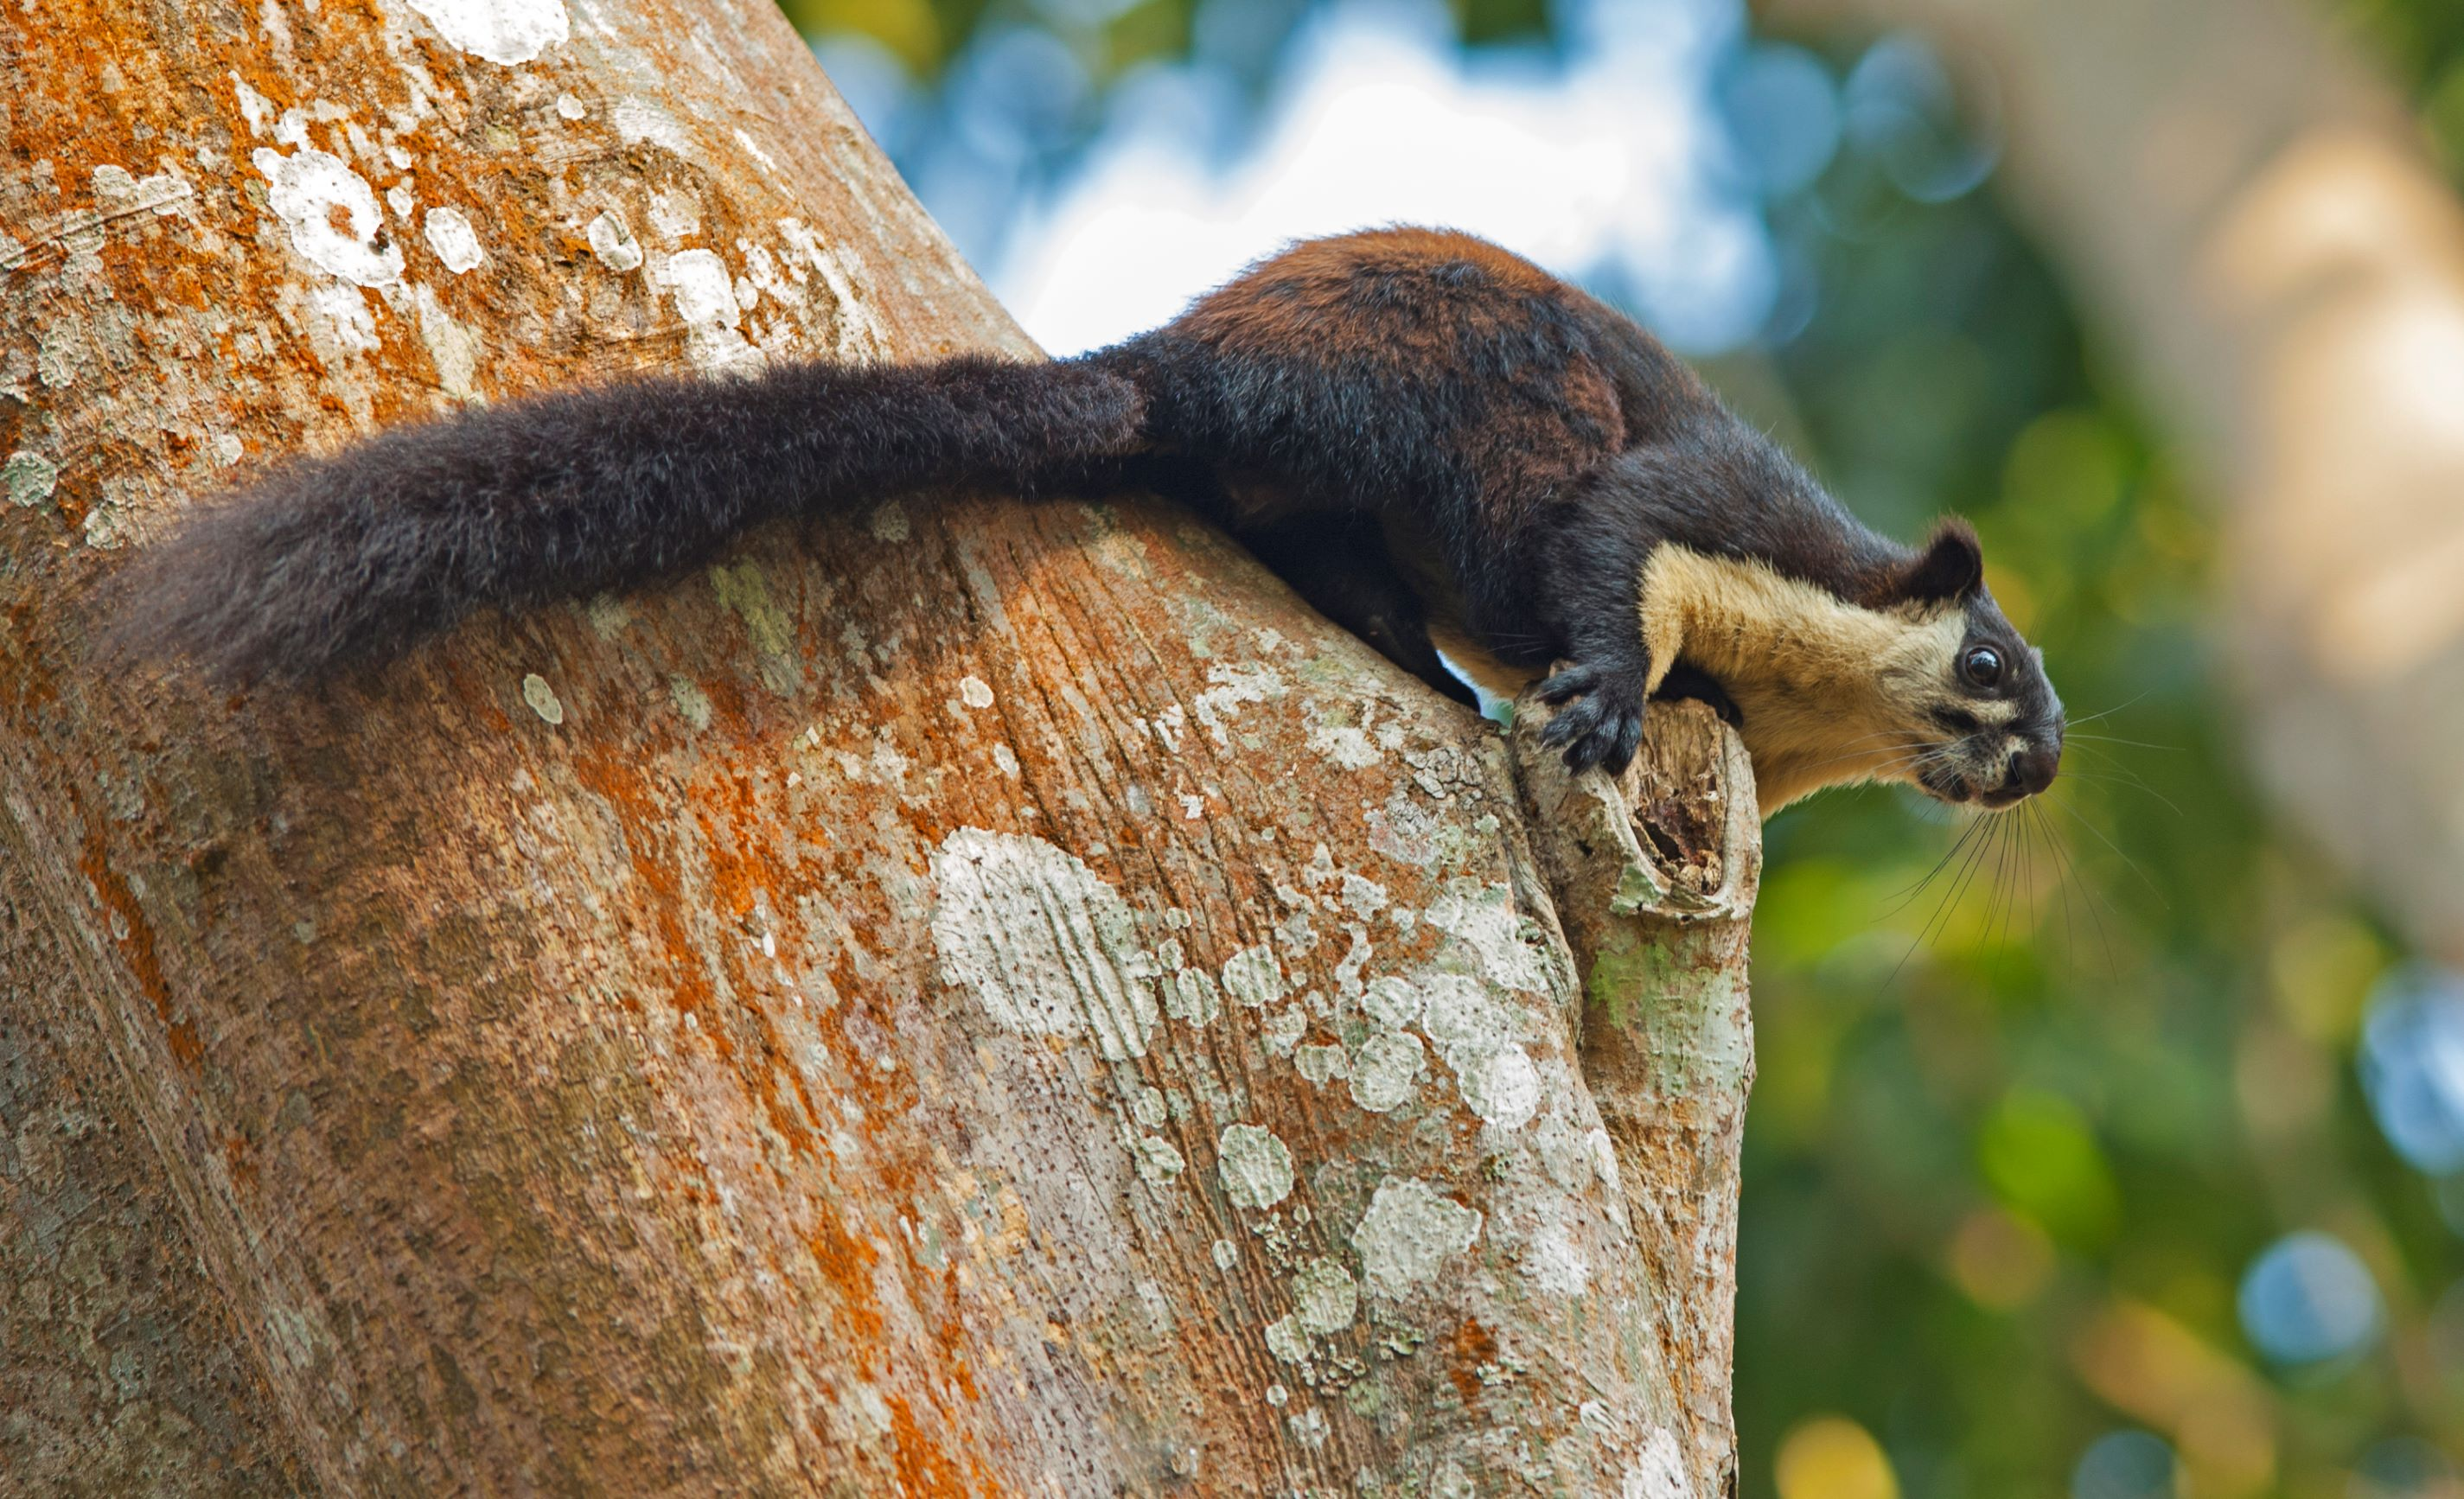 Fragmented patches of forests with disconnected canopies pose a great threat to the Malayan giant squirrels. Their global population is declining, and they are listed as 'Near Threatened' on the IUCN Red List. Photo: Dhritiman Mukherjee